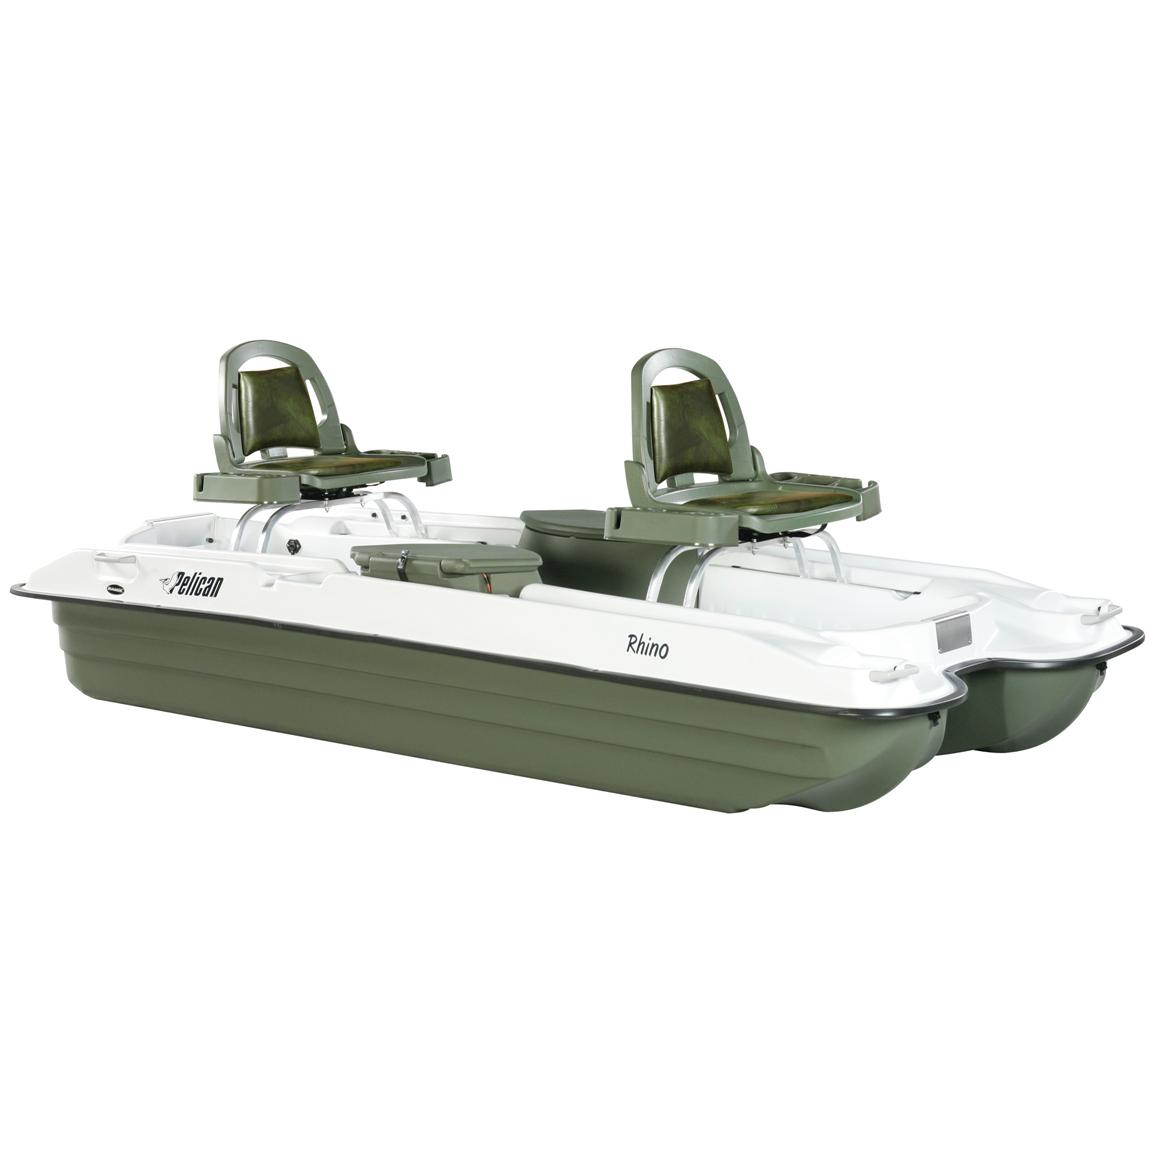 Pelican Paddle Boat Replacement Parts : Pelican boat replacement parts bing images